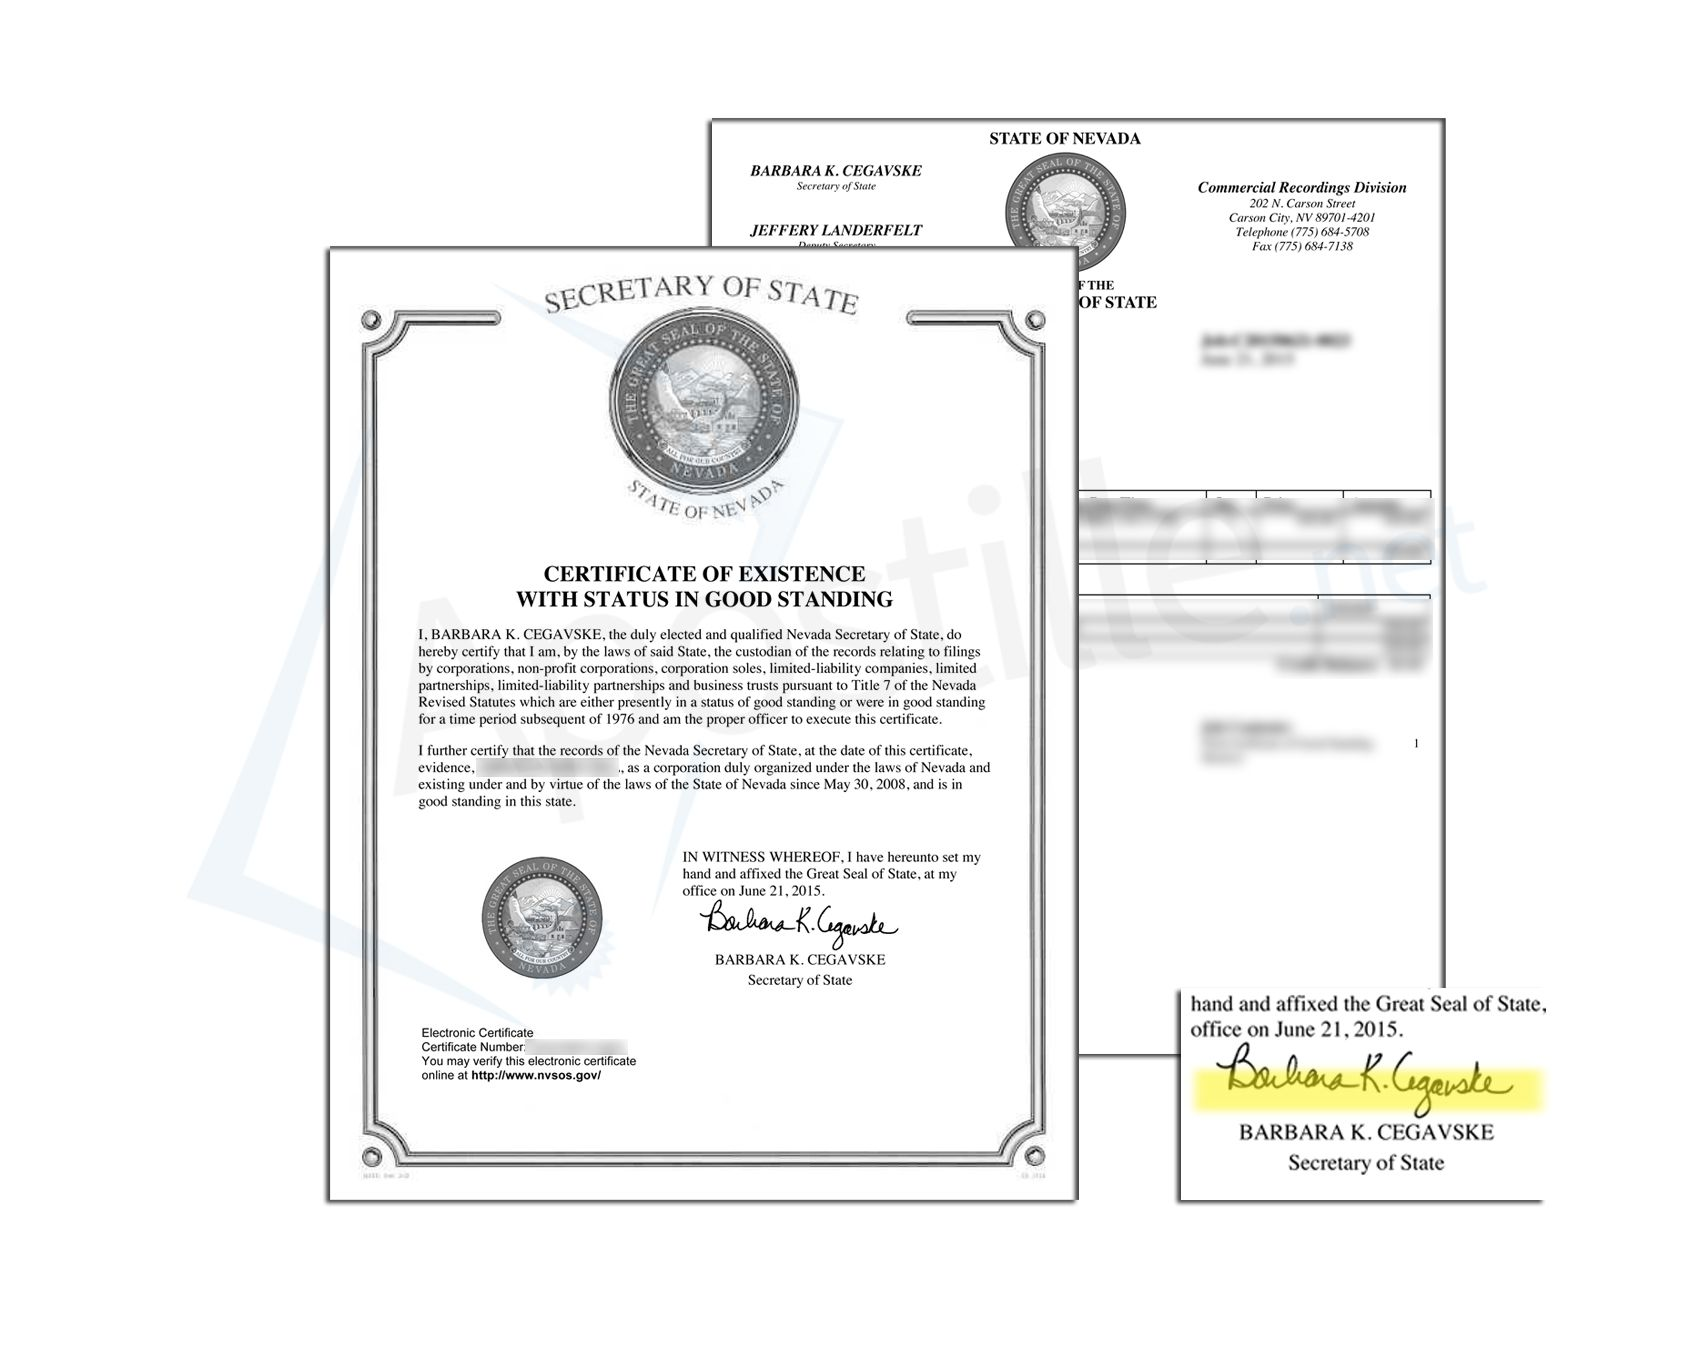 State Of Nevada Certificate Of Good Standing Issued By Barbara K